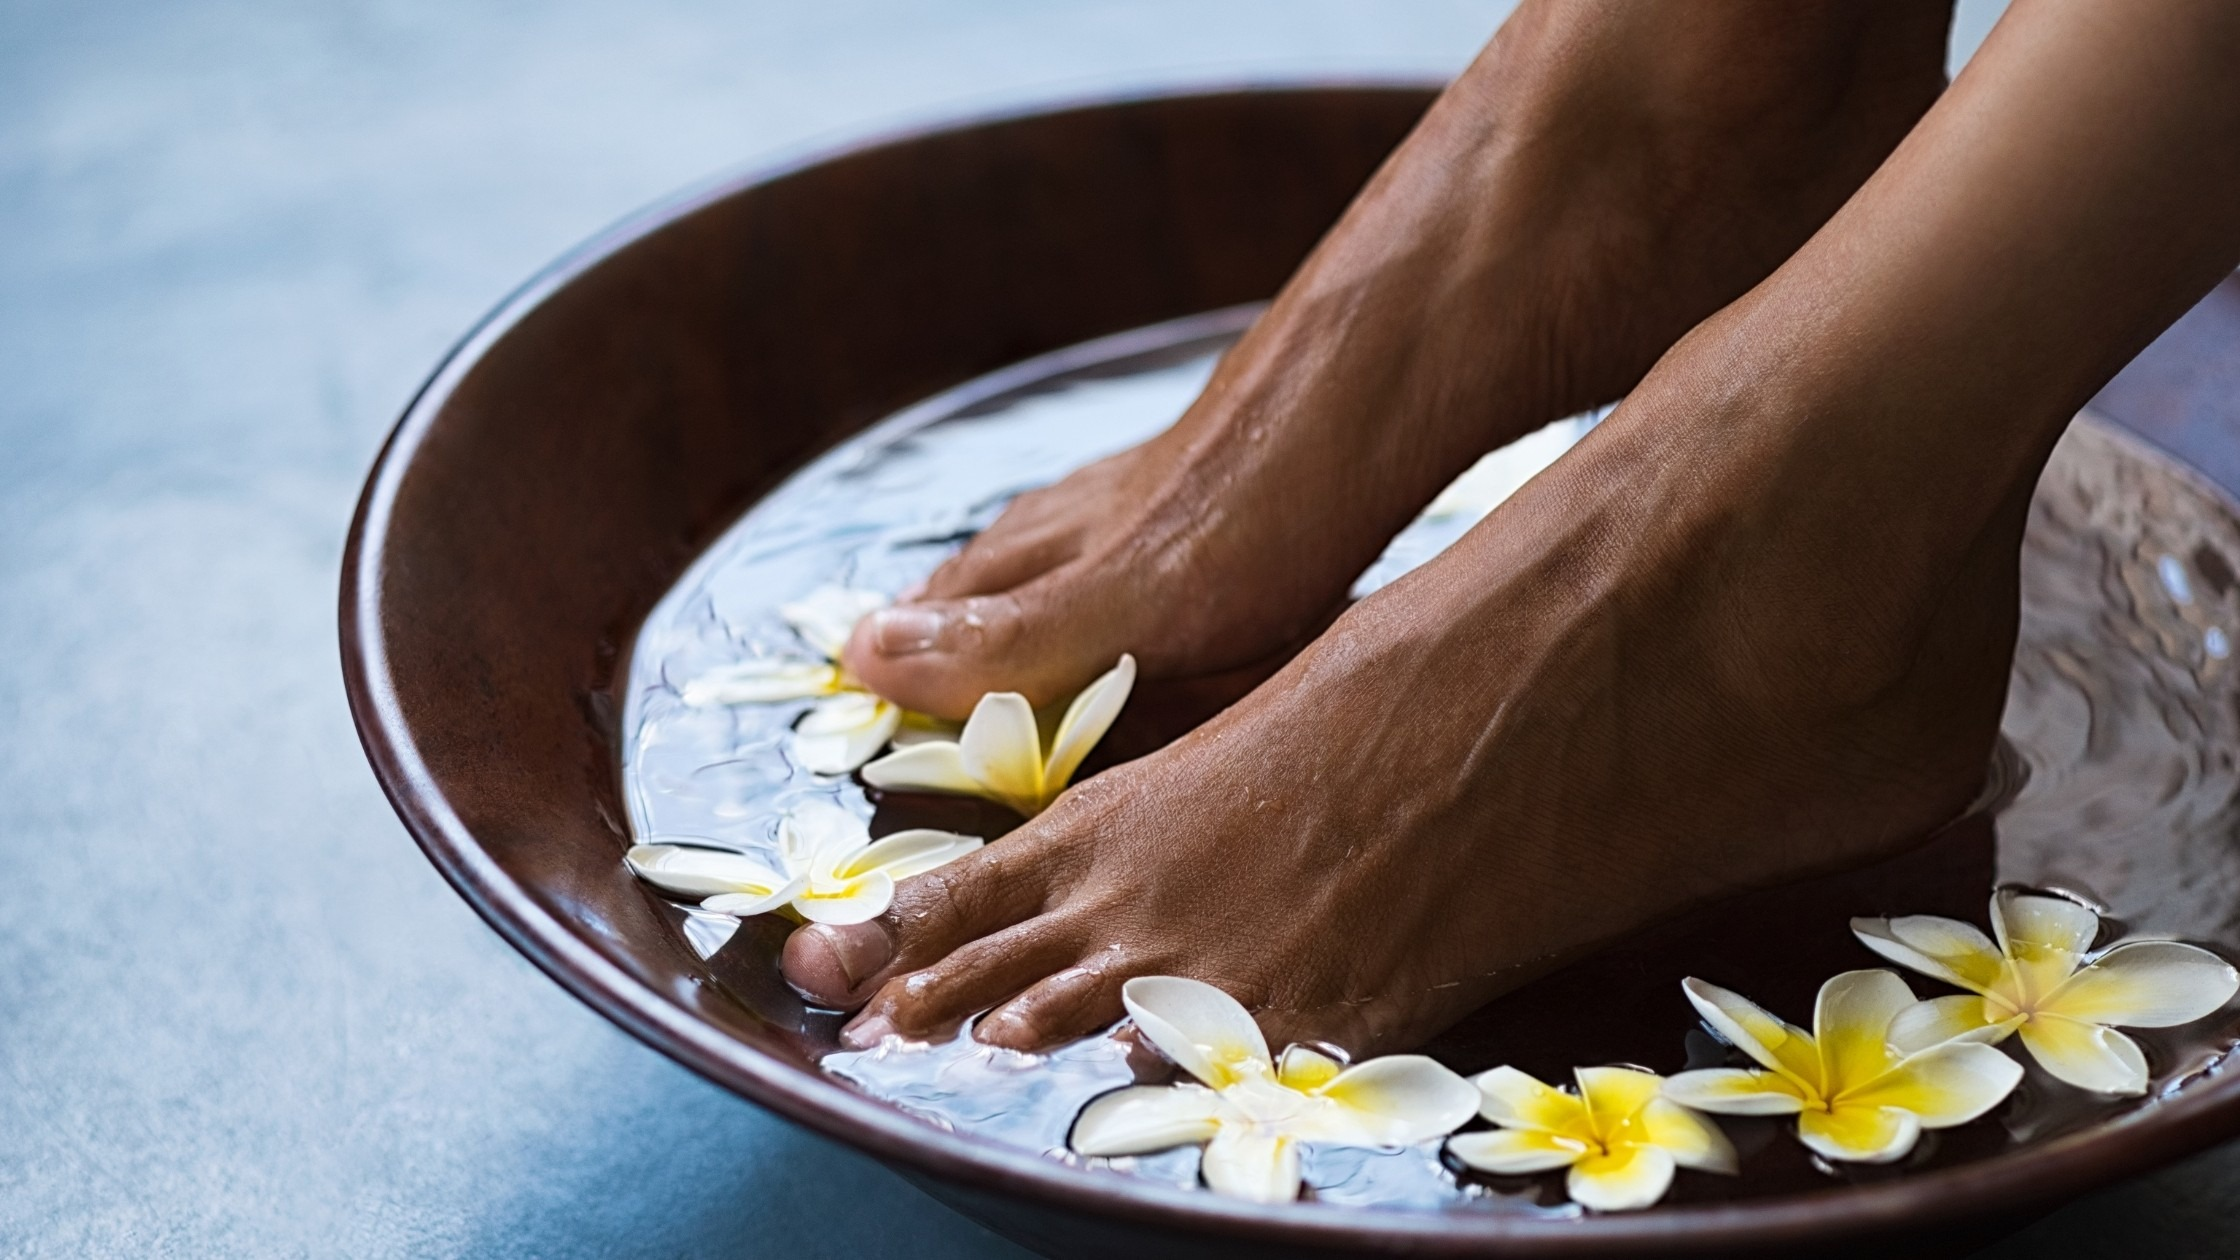 feet soaking in a bowl of water with flowers